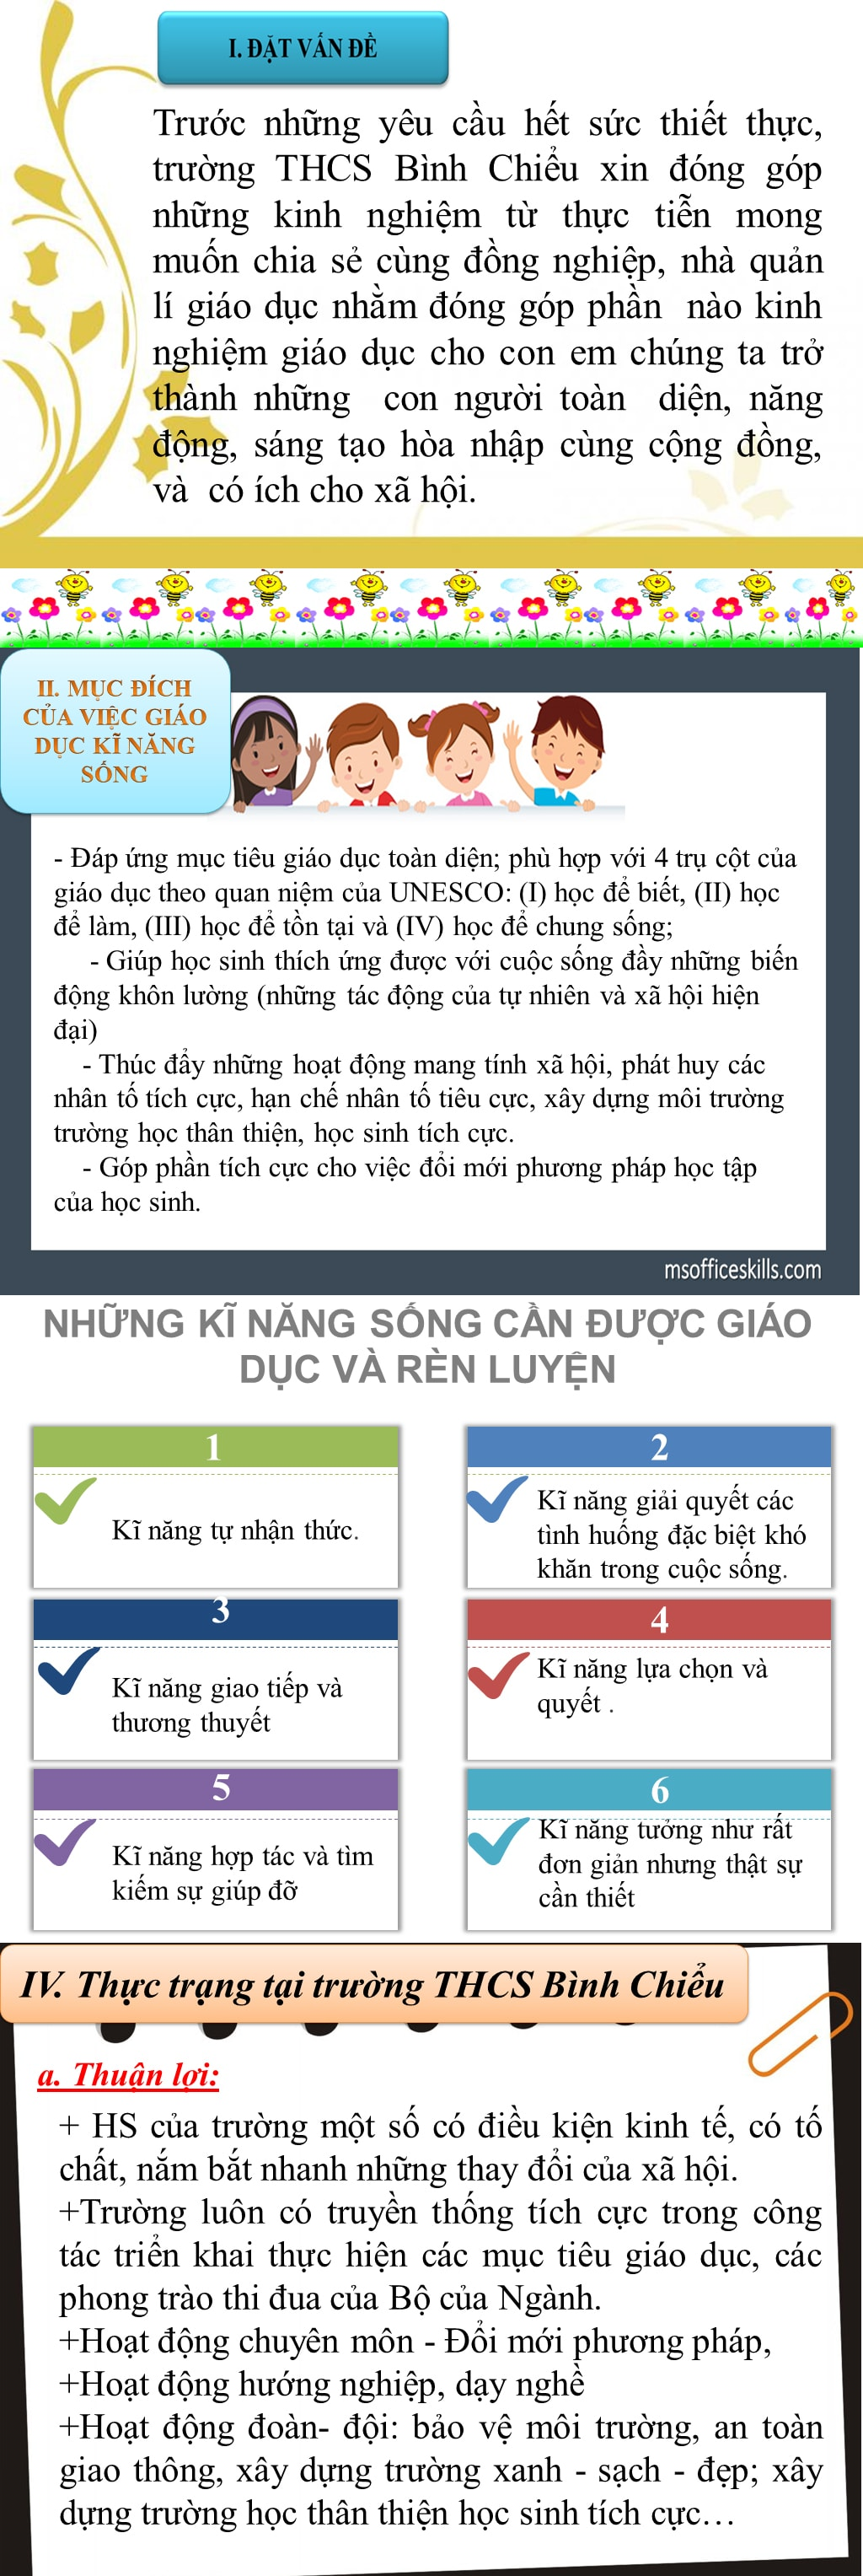 do quoc thinh 2